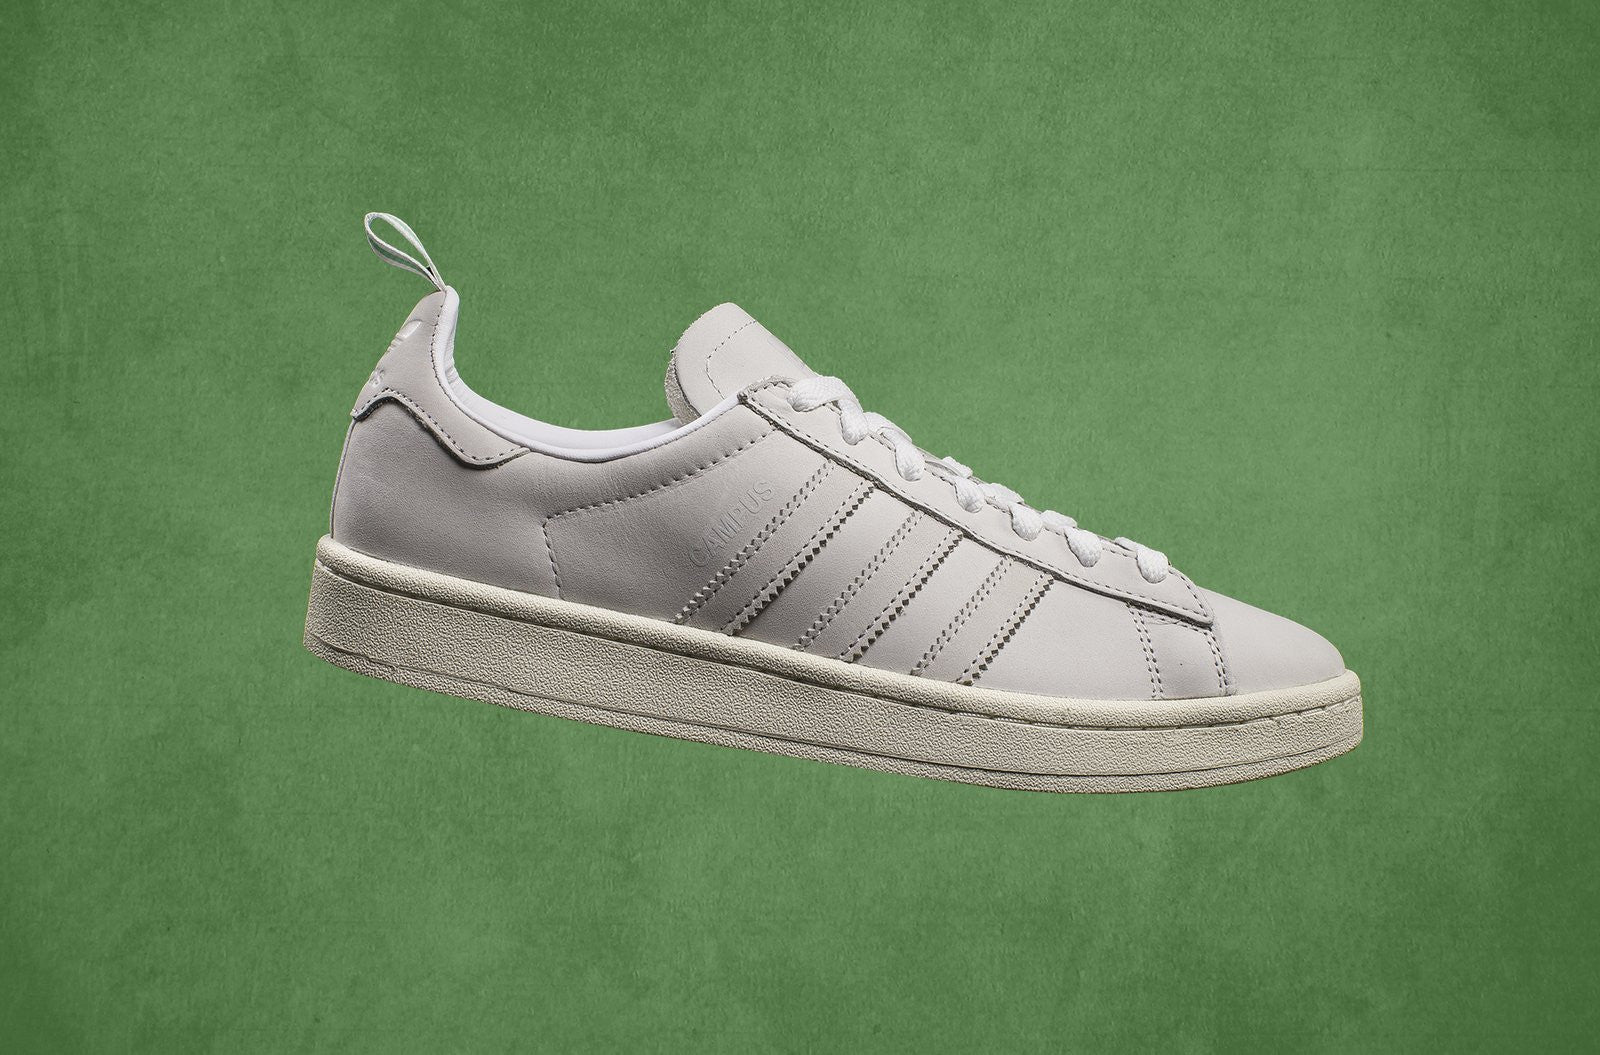 3beed469a4e06f adidas Originals Campus Vintage White - Oneness Boutique